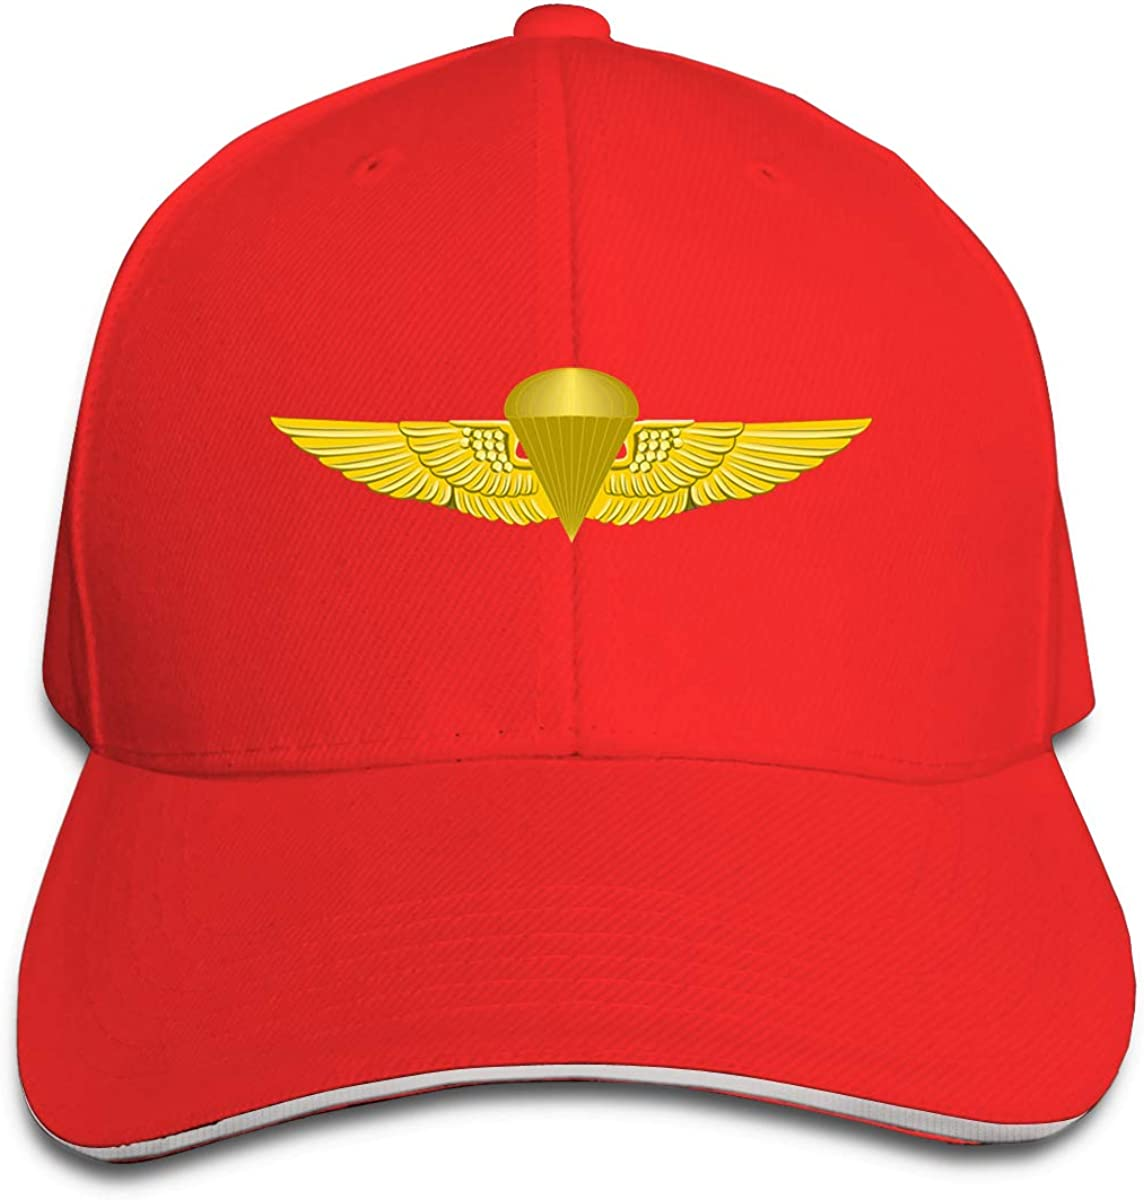 Marine Corps Jump Wings Unisex Adult Baseball Caps Adjustable Sandwich Caps Jeans Caps Adjustable Denim Trucker Cap